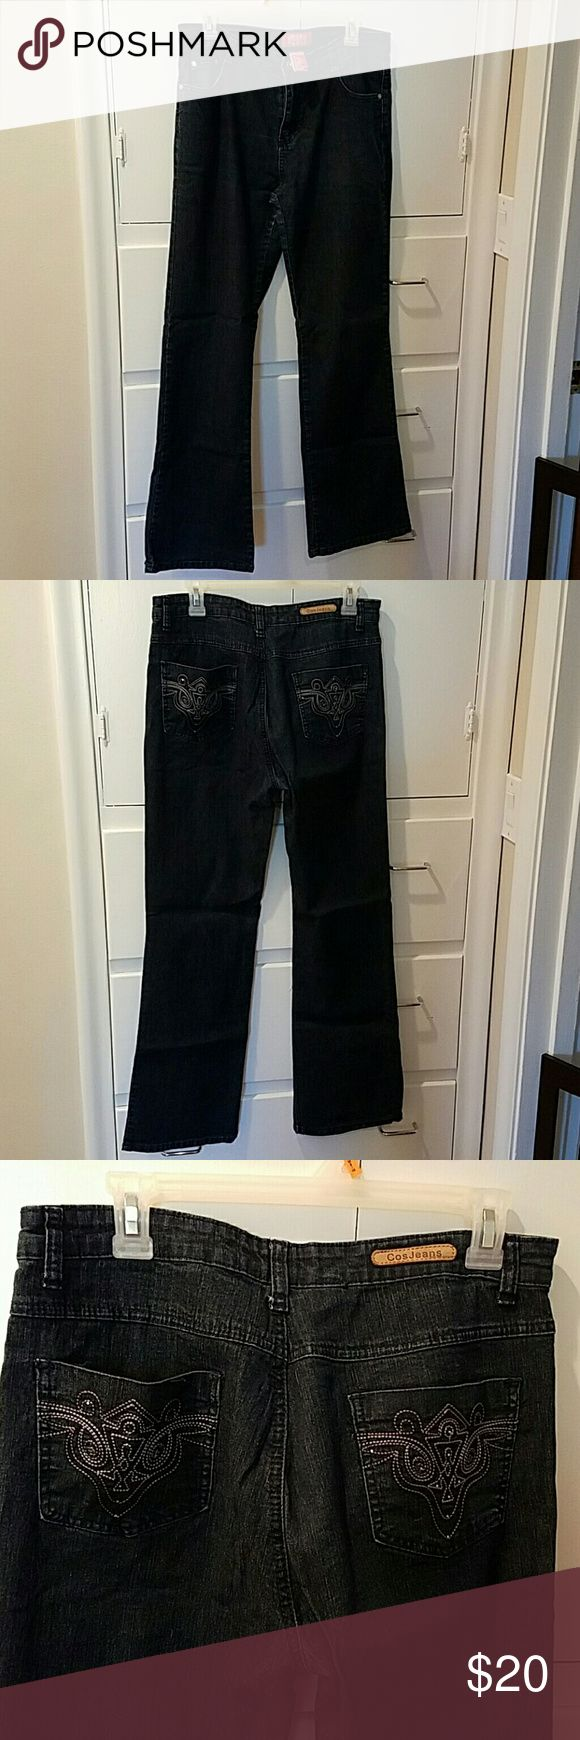 Cos Jeans size 10 This is a dark wash pair of jeans that are in great shape, I wish I could still wear them! The inseam is 29 inches. I'm 5' 8 and a half and they went a little past my ankle, not dragging the floor but a good length. cos Pants Straight Leg